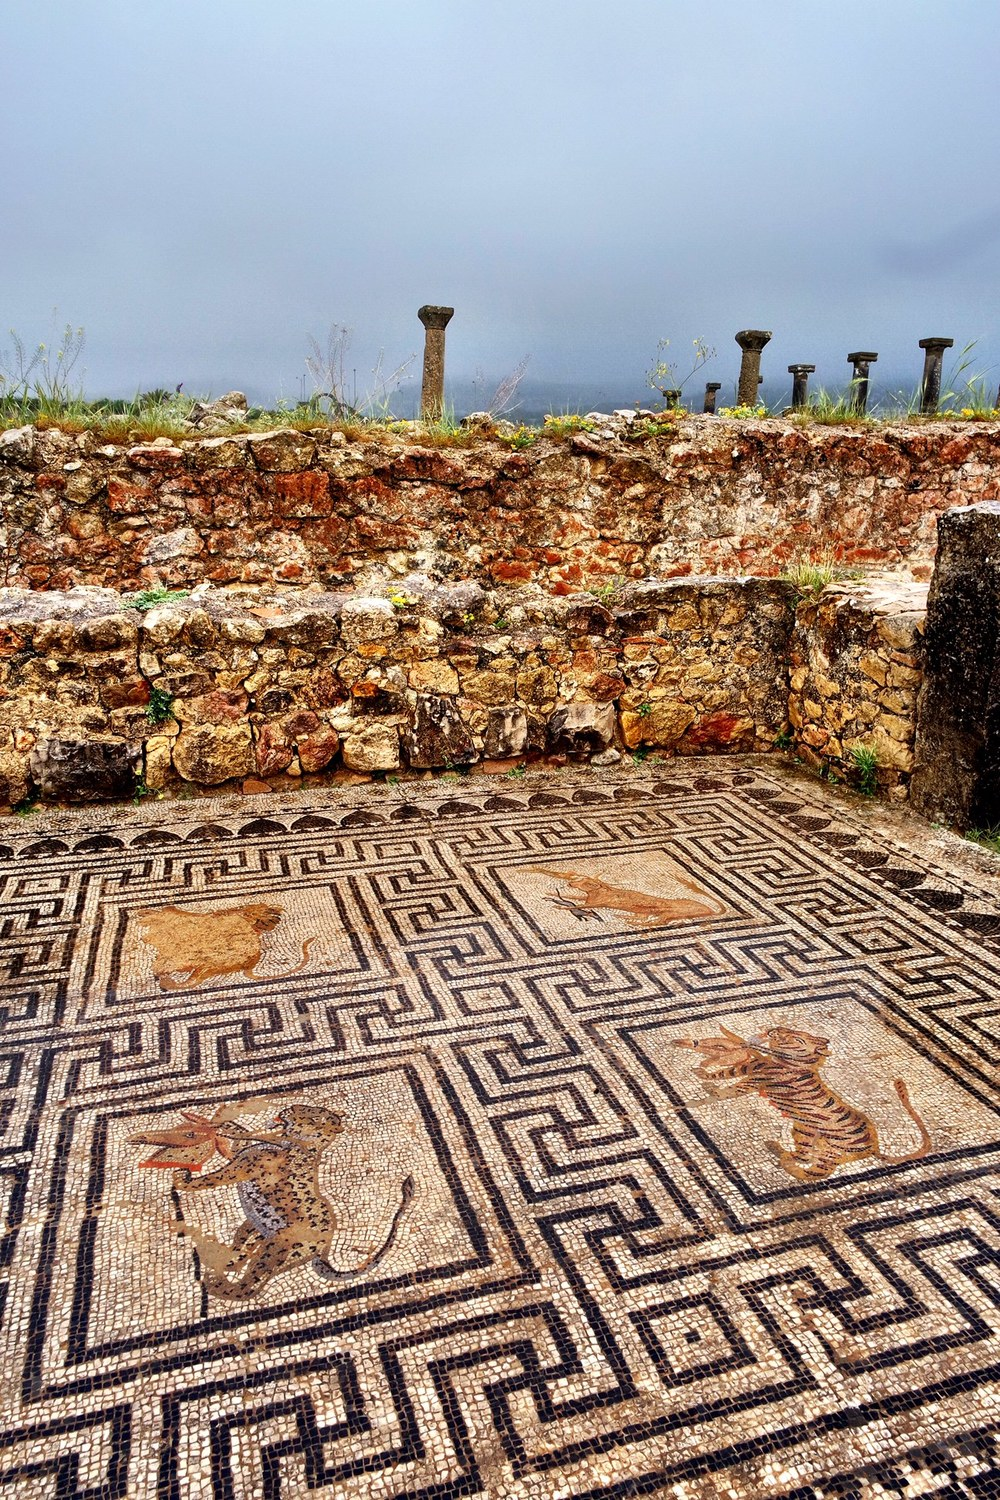 Many of the mosaics of Volubilis are in surprisingly good shape